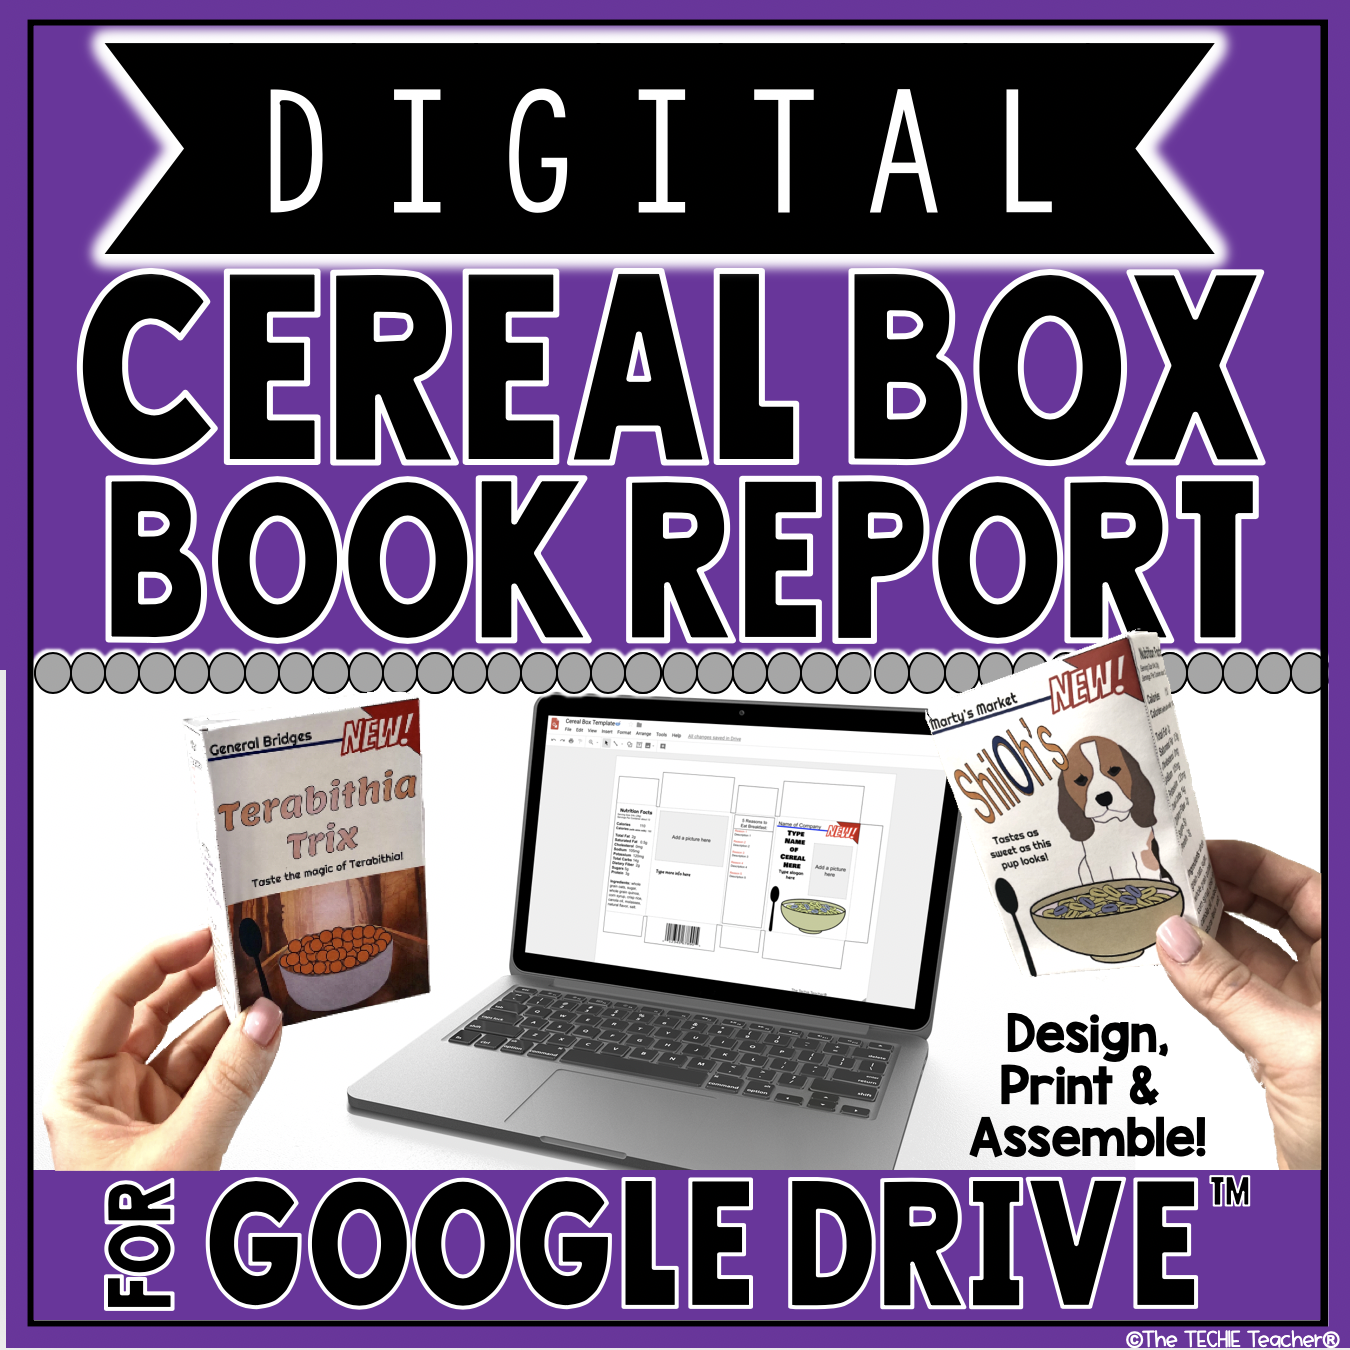 Digital Cereal Box Book Report for Google Drive